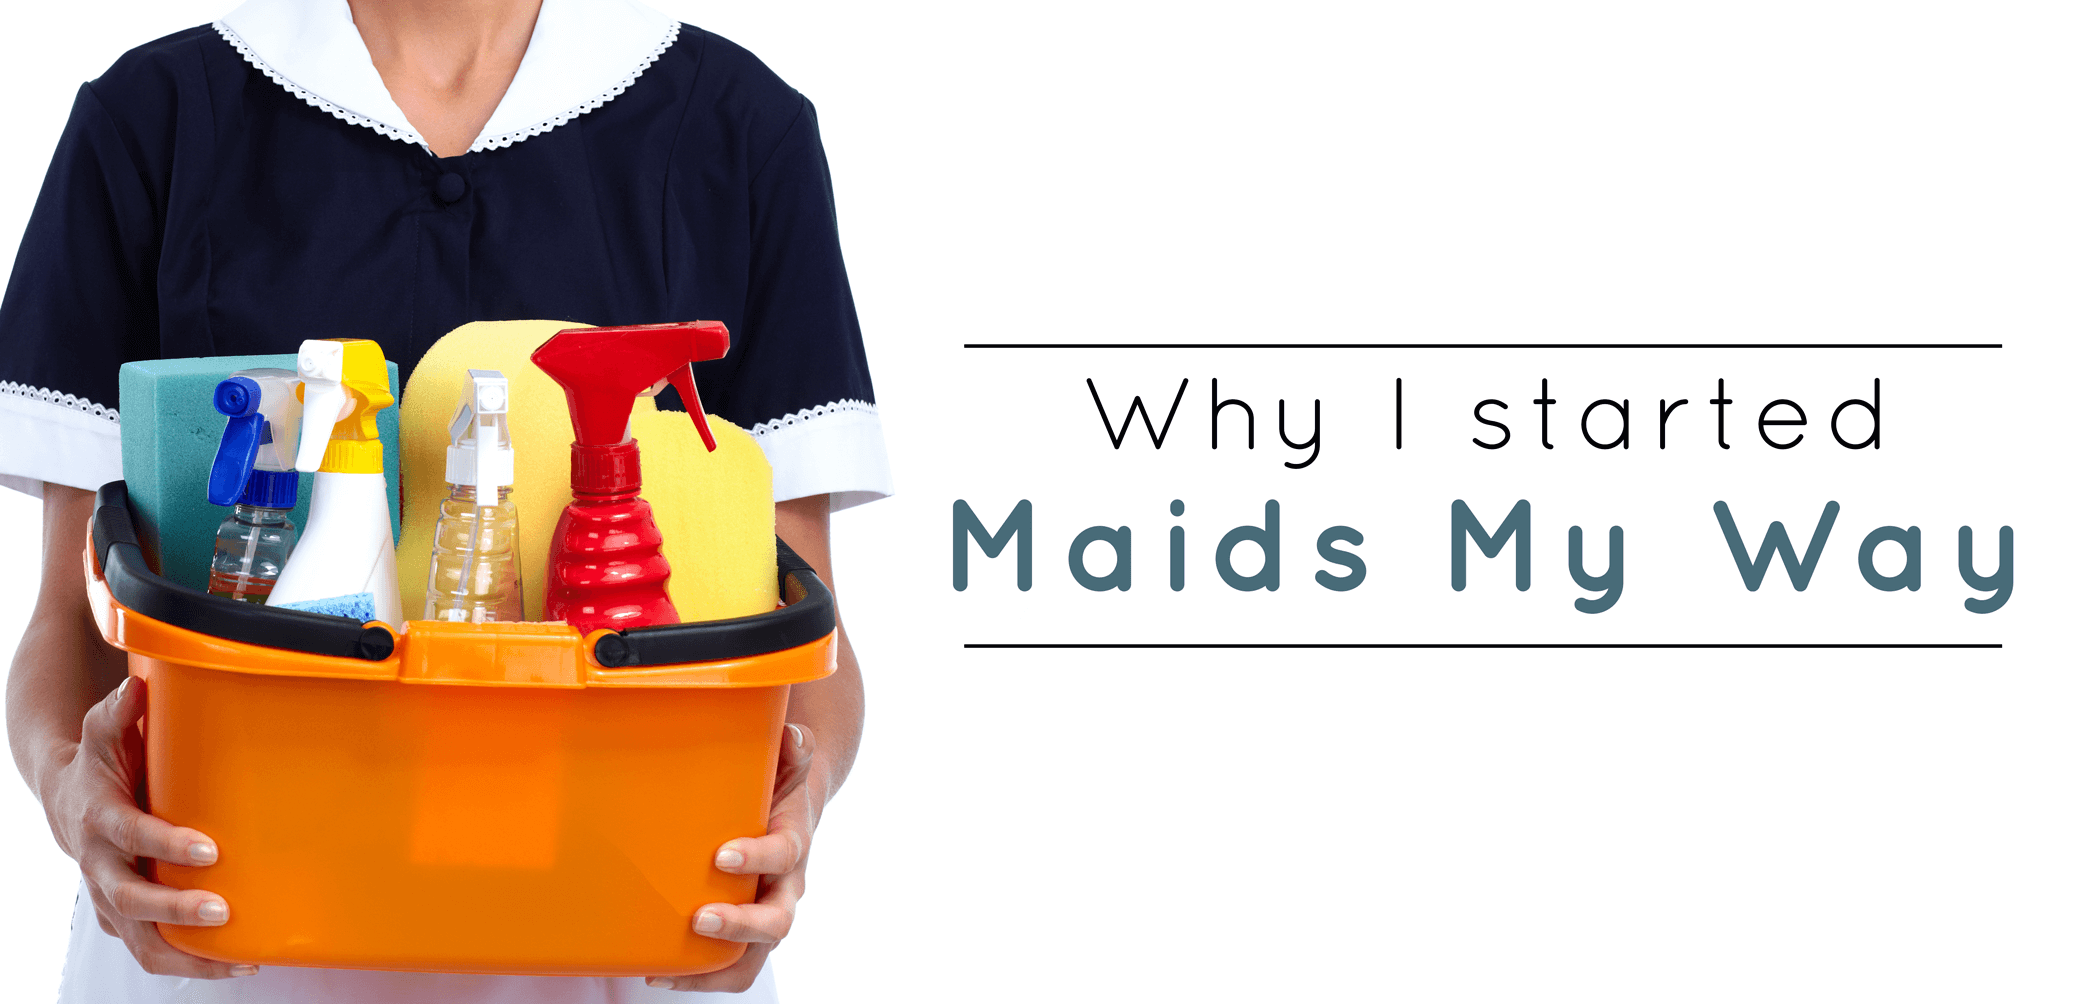 Maids My Way was Started